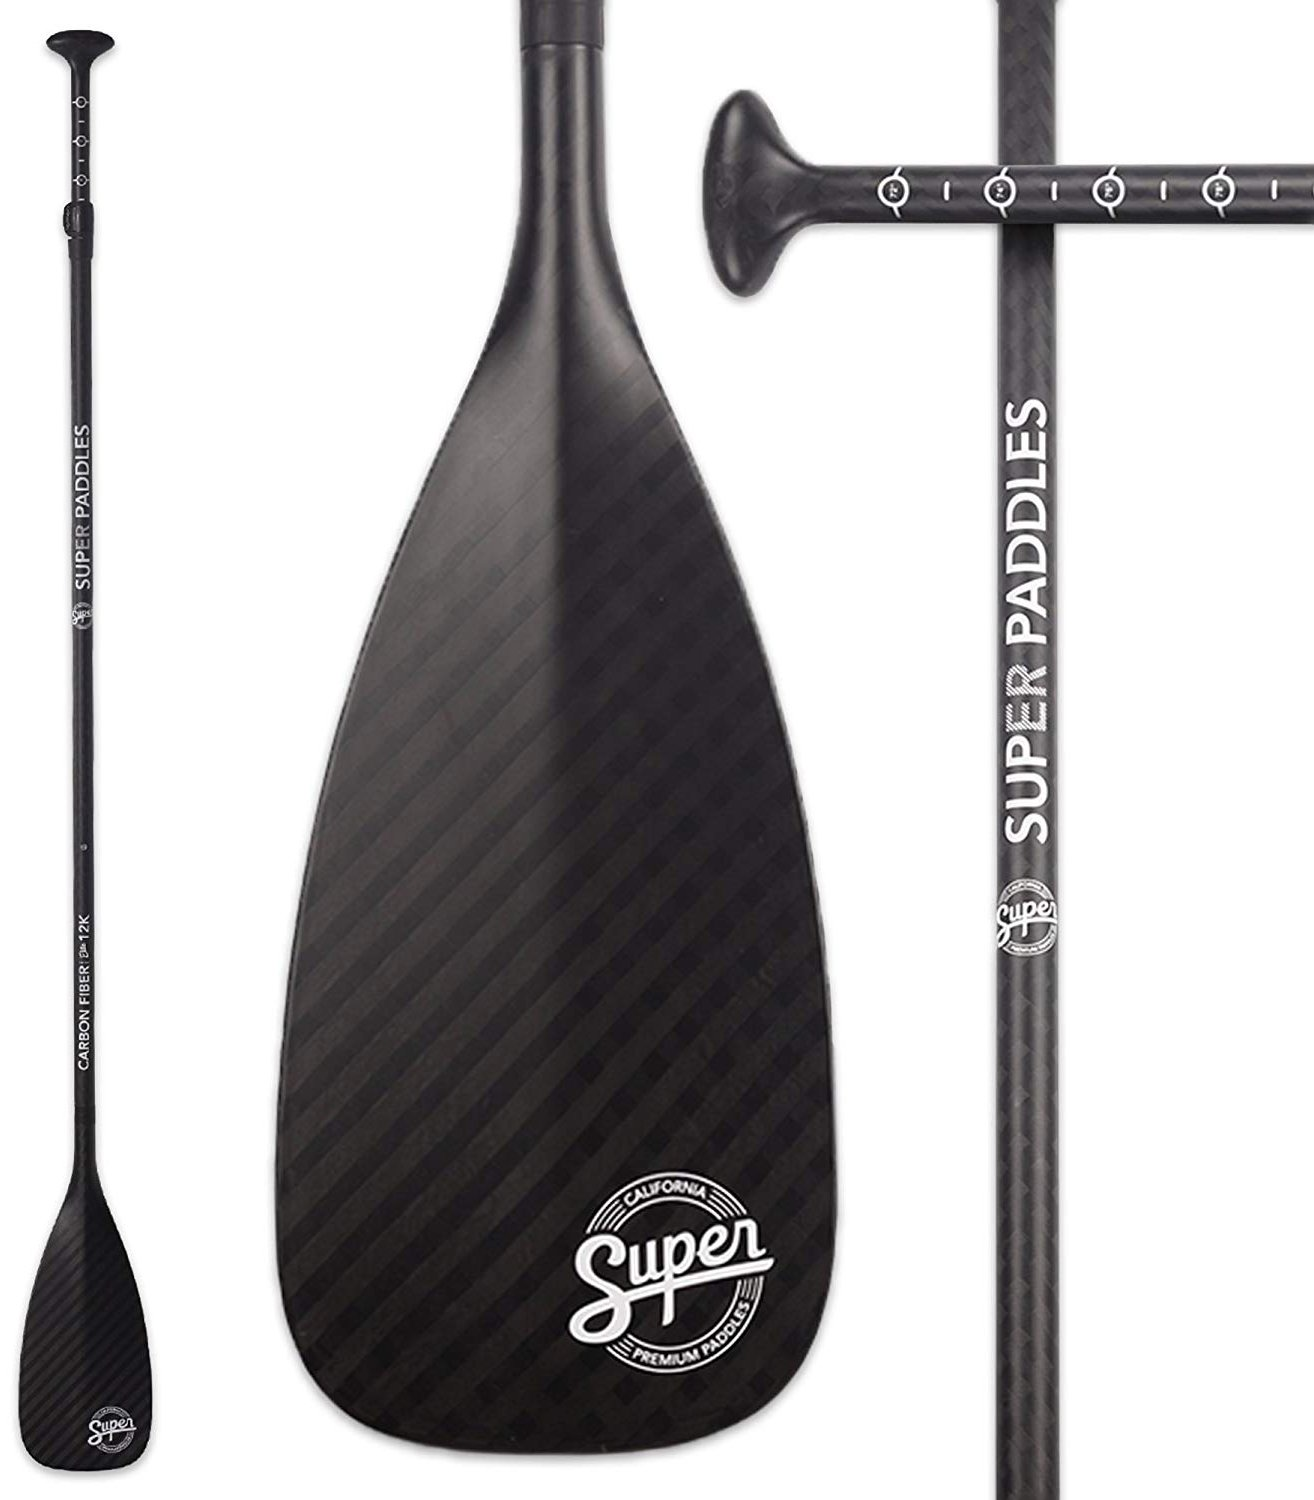 Super Paddles Pure 12K Carbon Fiber SUP Paddle - 3-Piece Adjustable Stand Up Paddle with Paddle Bag Carbon Fiber Series Elite 12K - Carbon Fiber Blade & Shaft by Super Paddles (Image #1)